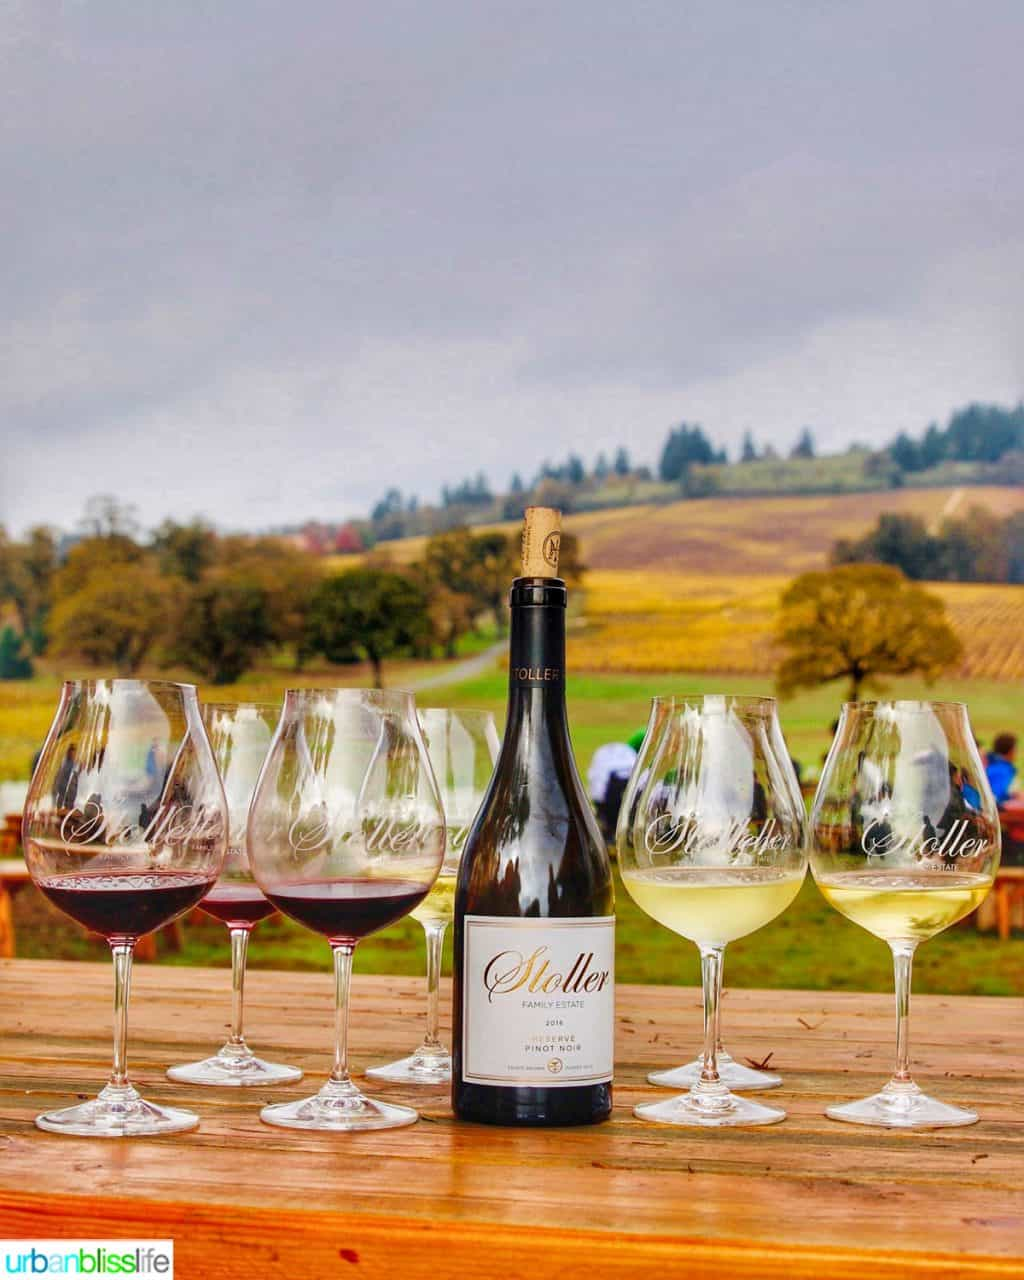 Stoller wine bottle and red and white wine glasses against vineyard backdrop